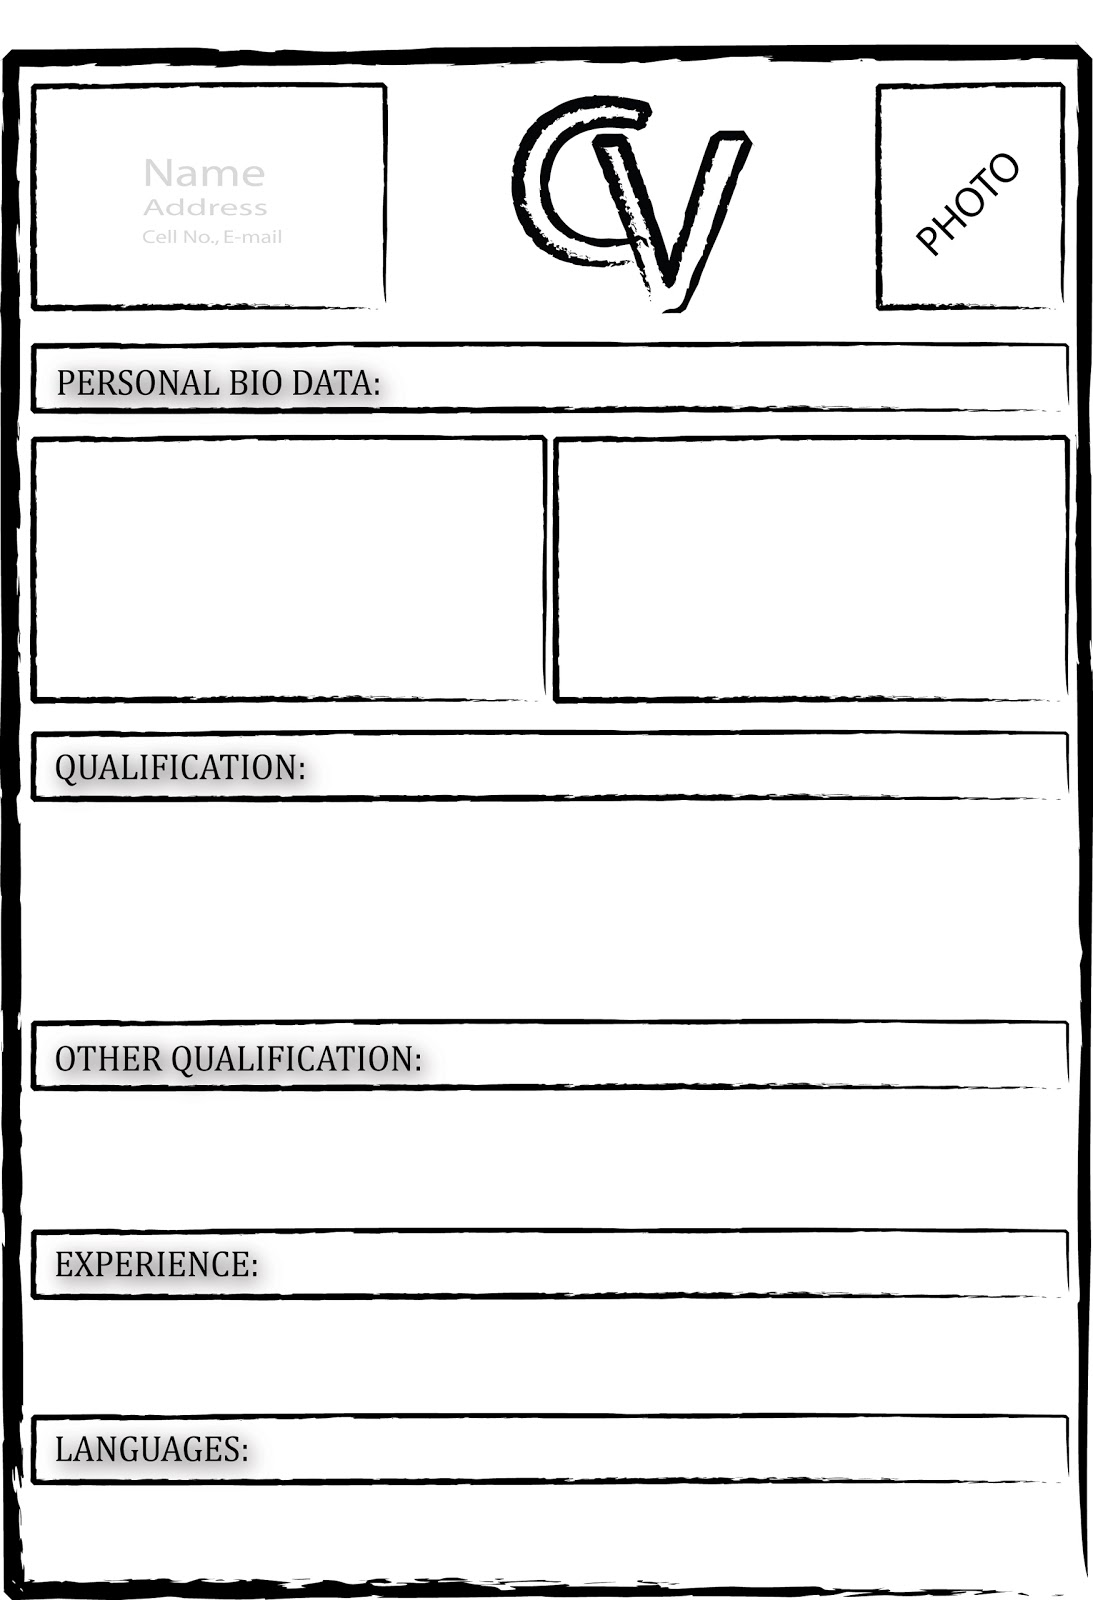 blank resume template microsoft word httpjobresumesamplecom331 - Blank Resume Templates For Microsoft Word